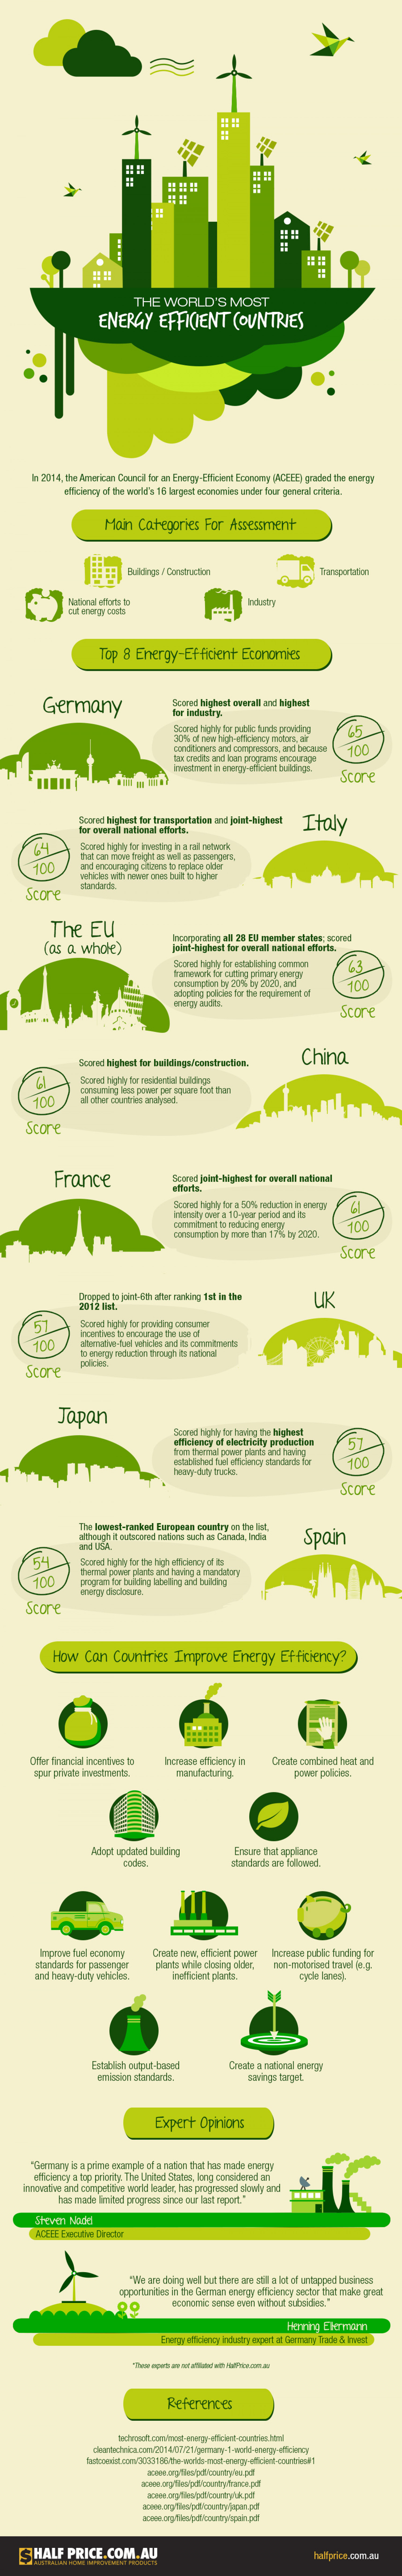 The World's Most Energy Efficient Countries Infographic Infographic